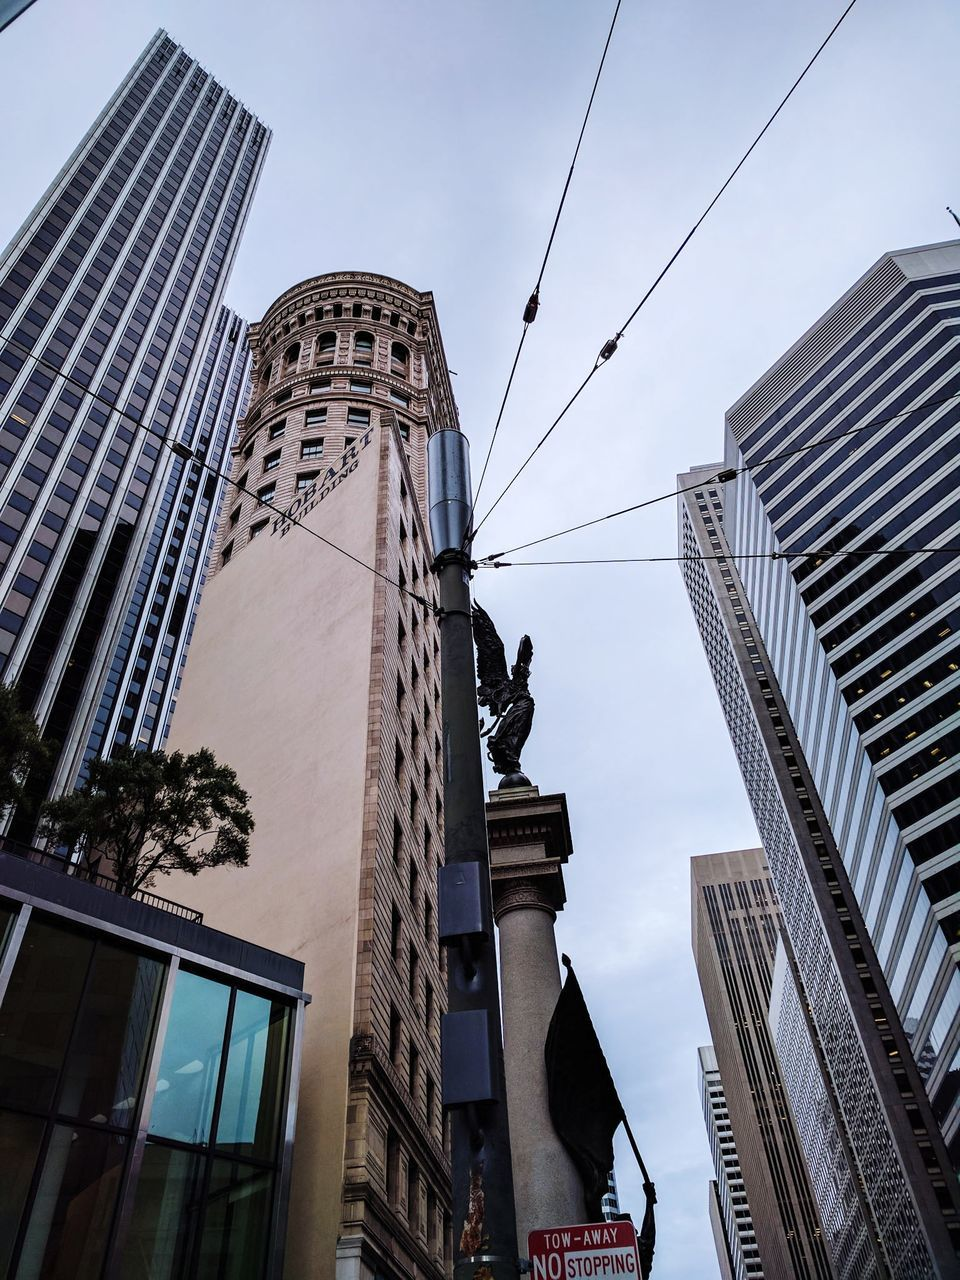 architecture, building exterior, built structure, skyscraper, low angle view, sculpture, city, statue, modern, outdoors, day, sky, travel destinations, no people